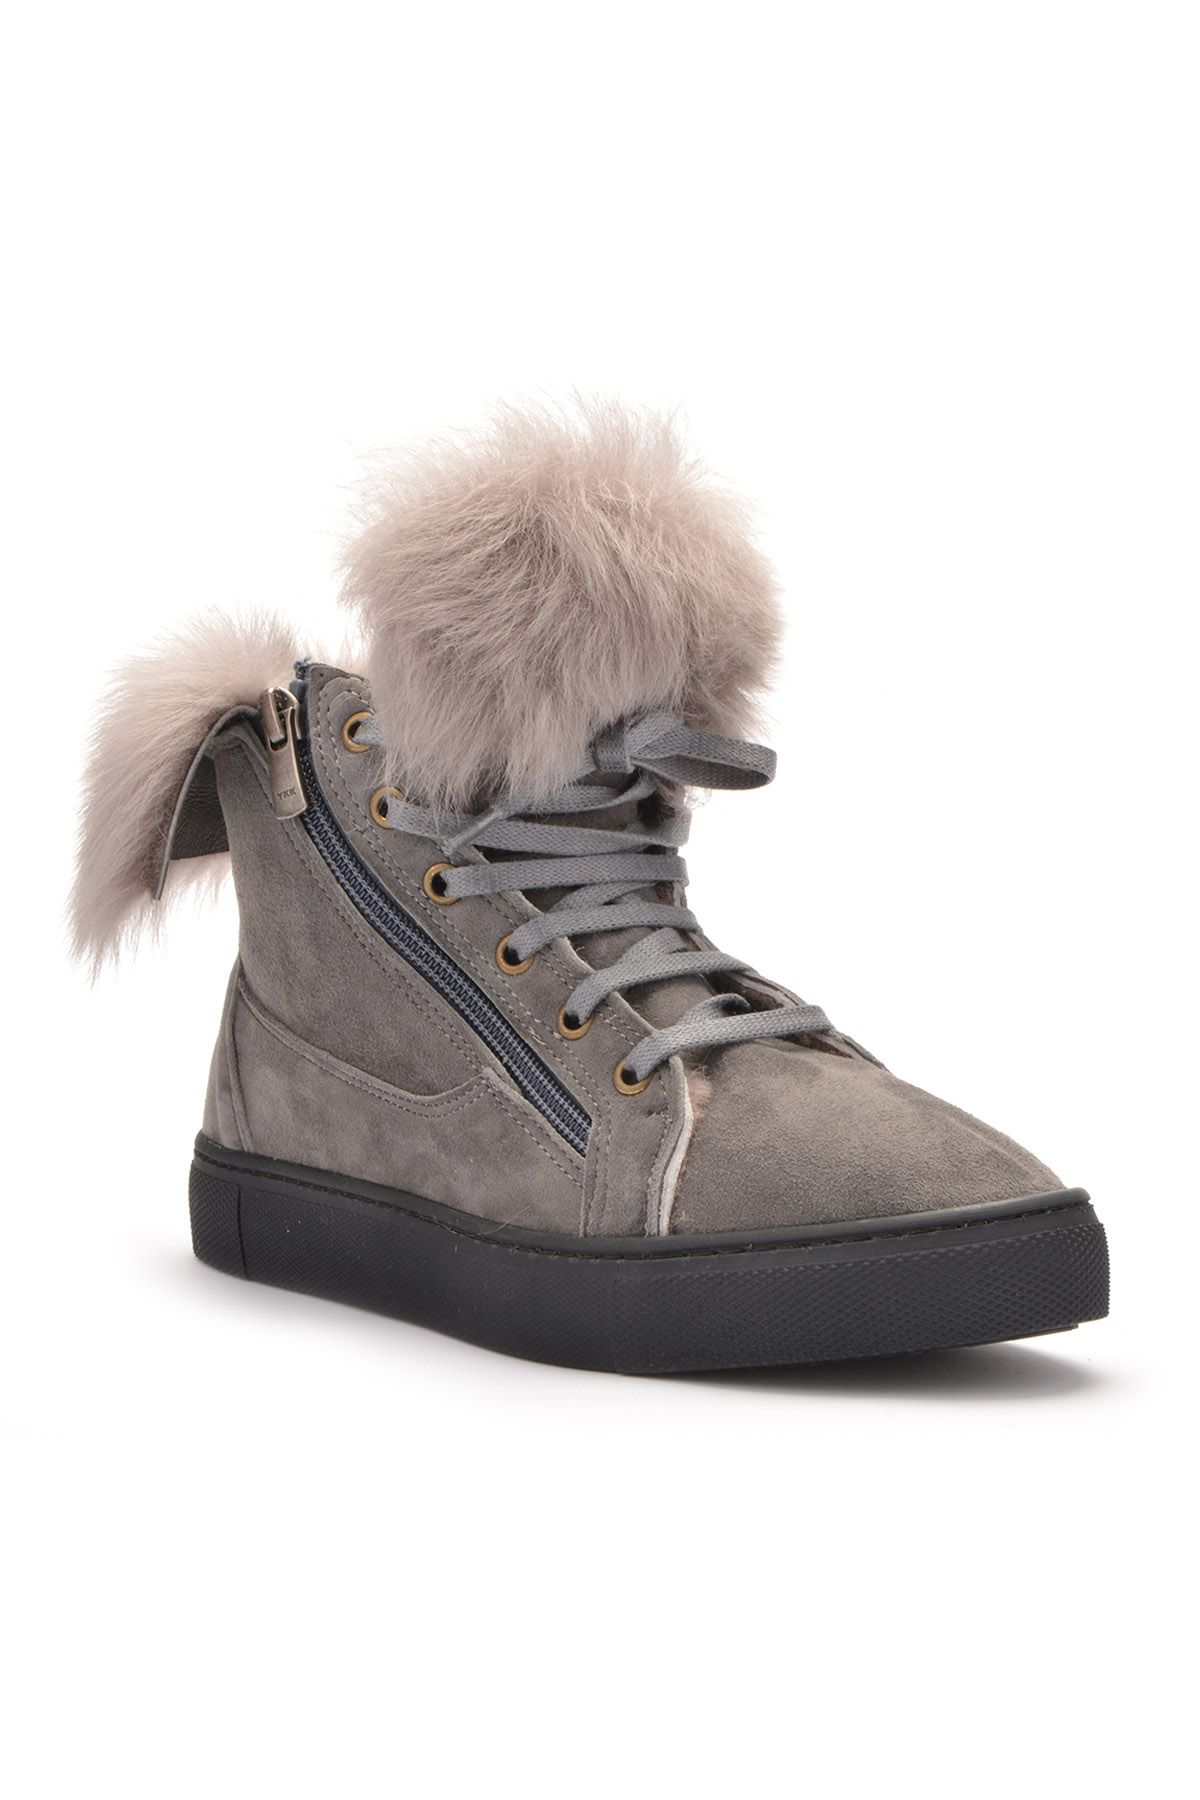 Pegia Women Boots With Zip Decorated With Genuine Toscana Fur 659548 Gray